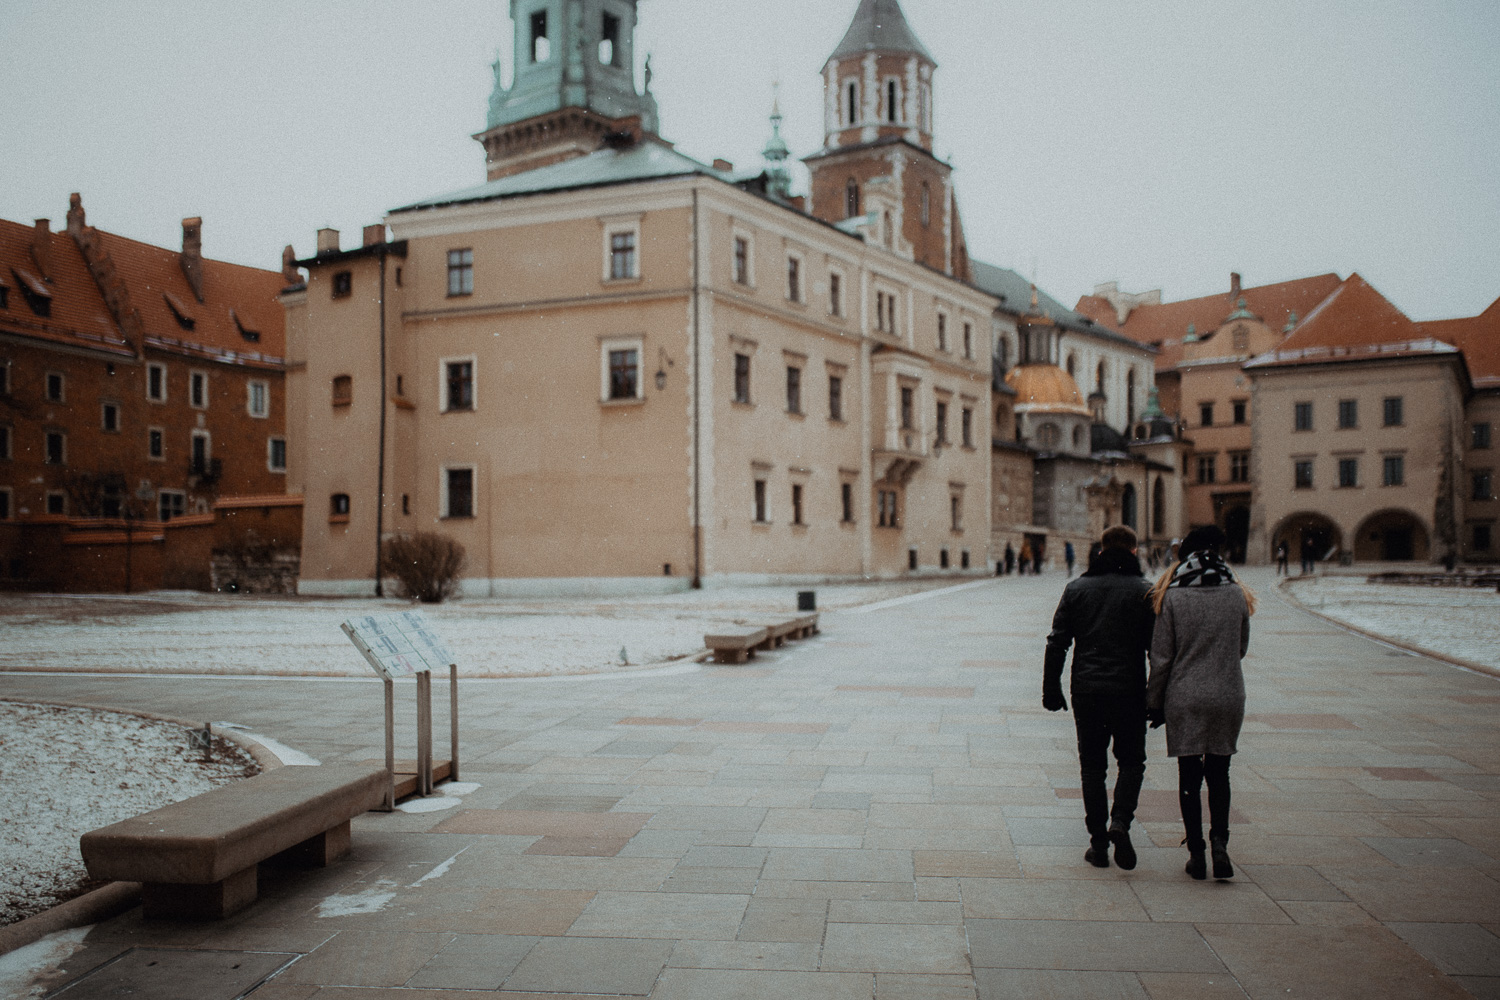 Engagement-photoshoot-in-winter-krakow-wawel-41.jpg